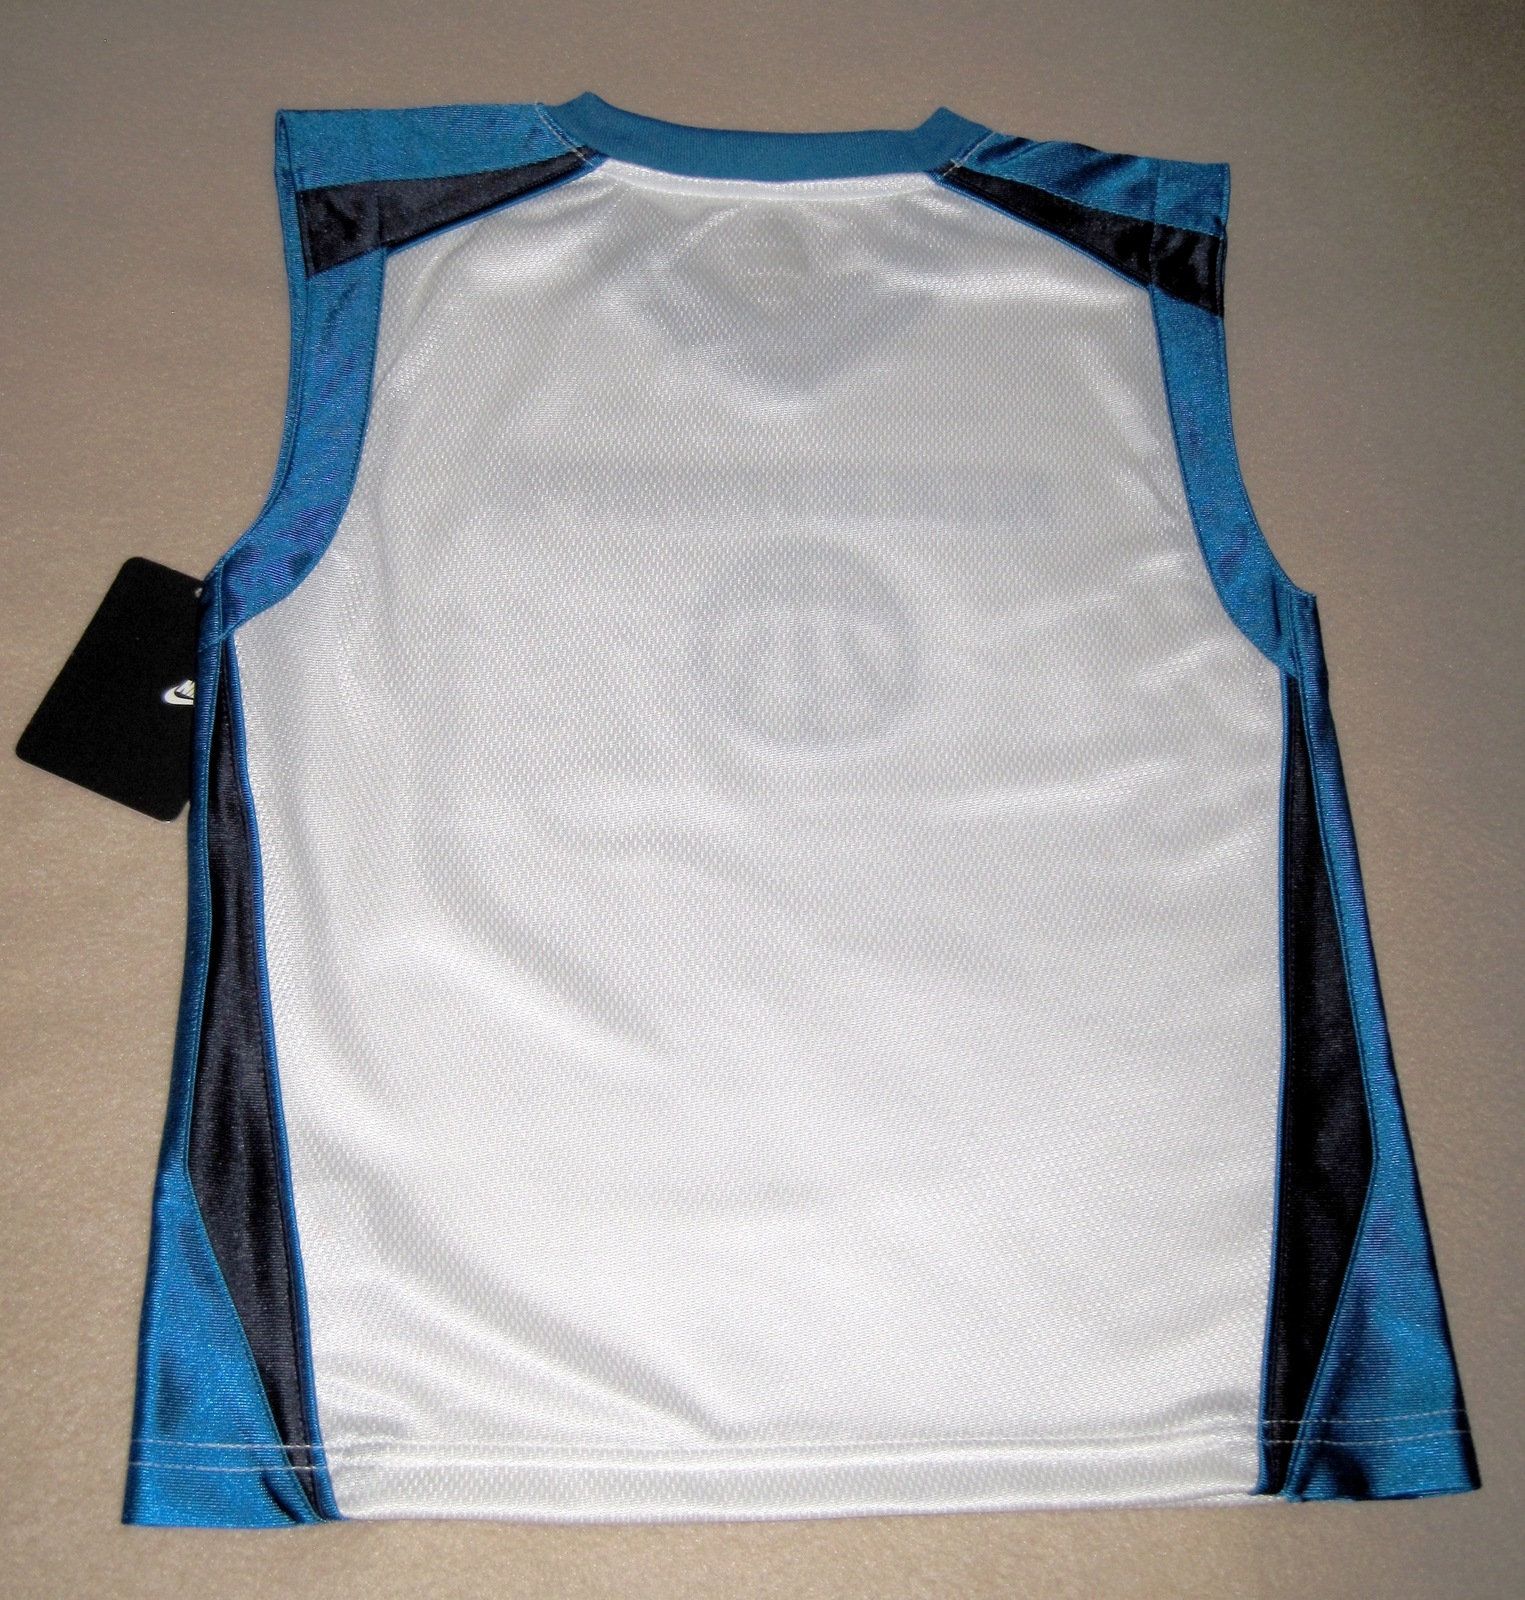 BOYS 6 - Nike Hoops - White-Electric Blue-Black BASKETBALL SPORTS JERSEY image 9